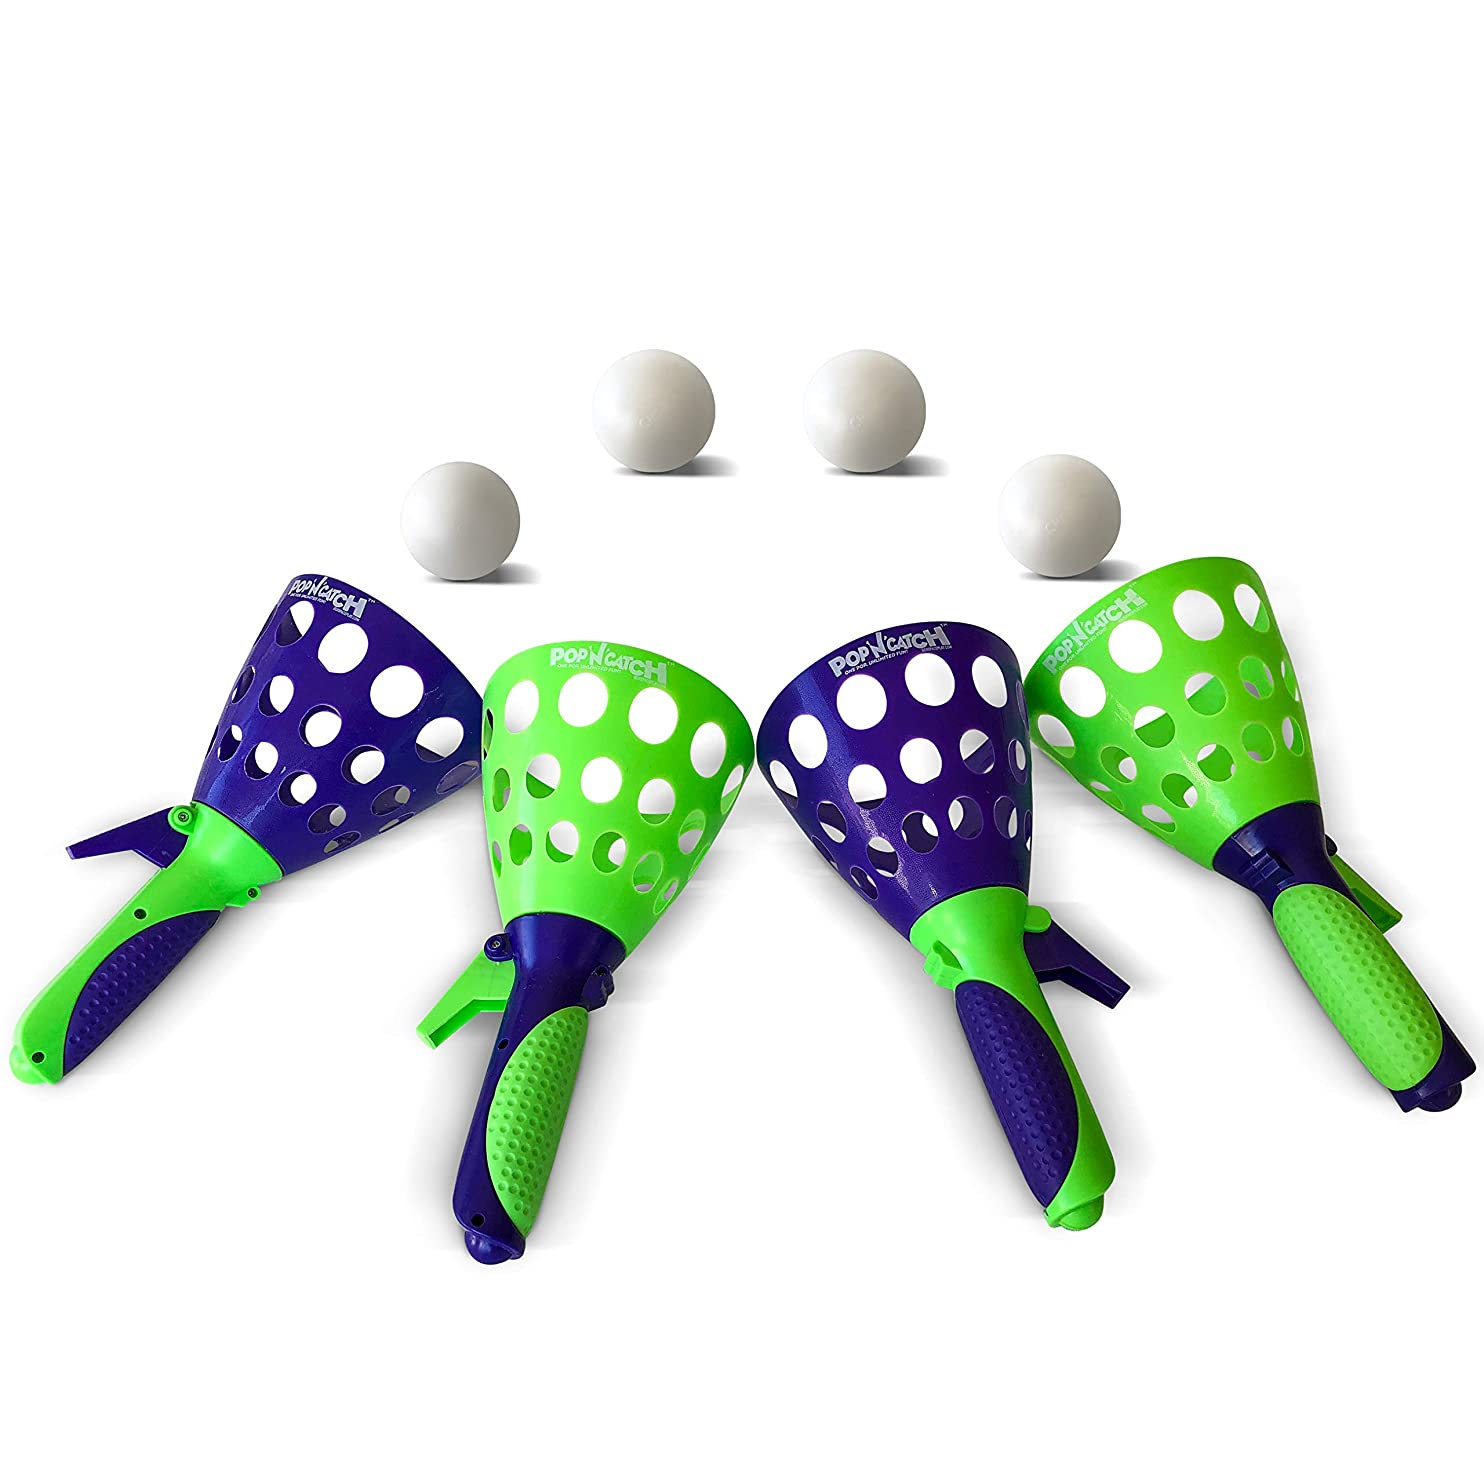 Geospace The Original Pop 'N Catch Game, Set of Four - Perfect for Backyard, Beach, Tailgate | Fun for Kids and Adults cdbzrqqbldu34